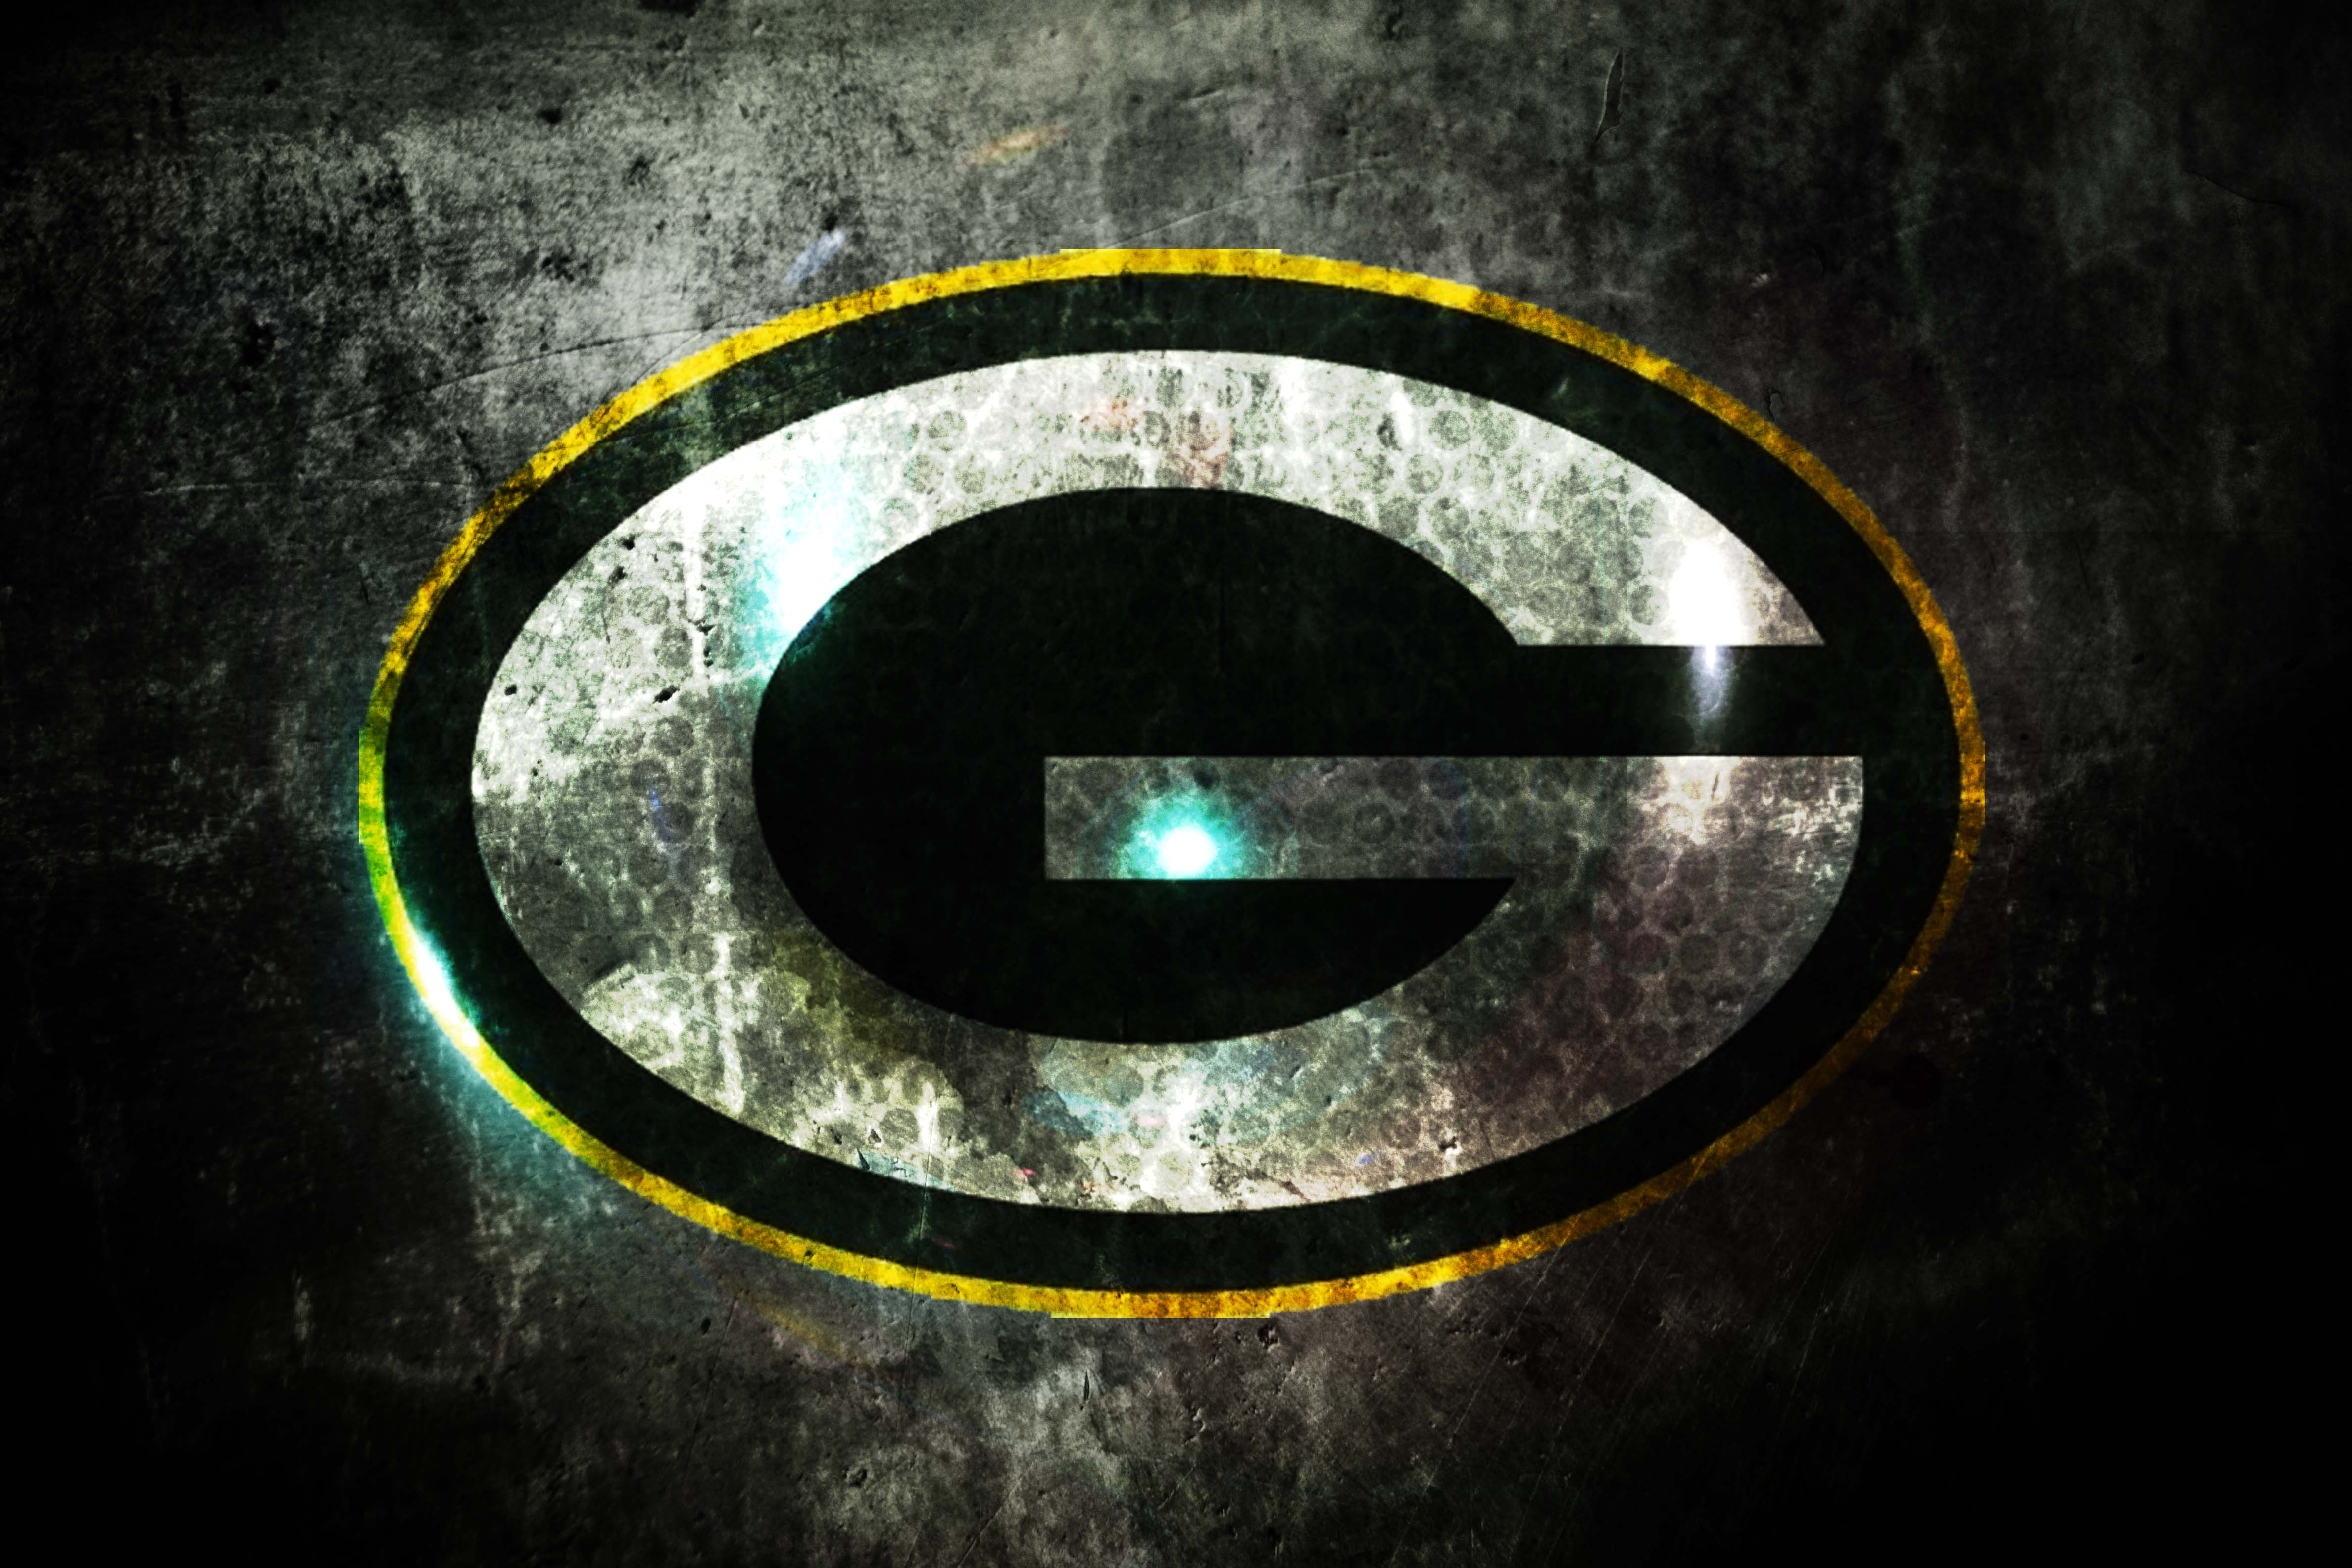 Green Bay Packers wallpaper images Green Bay Packers wallpapers 4752x3168